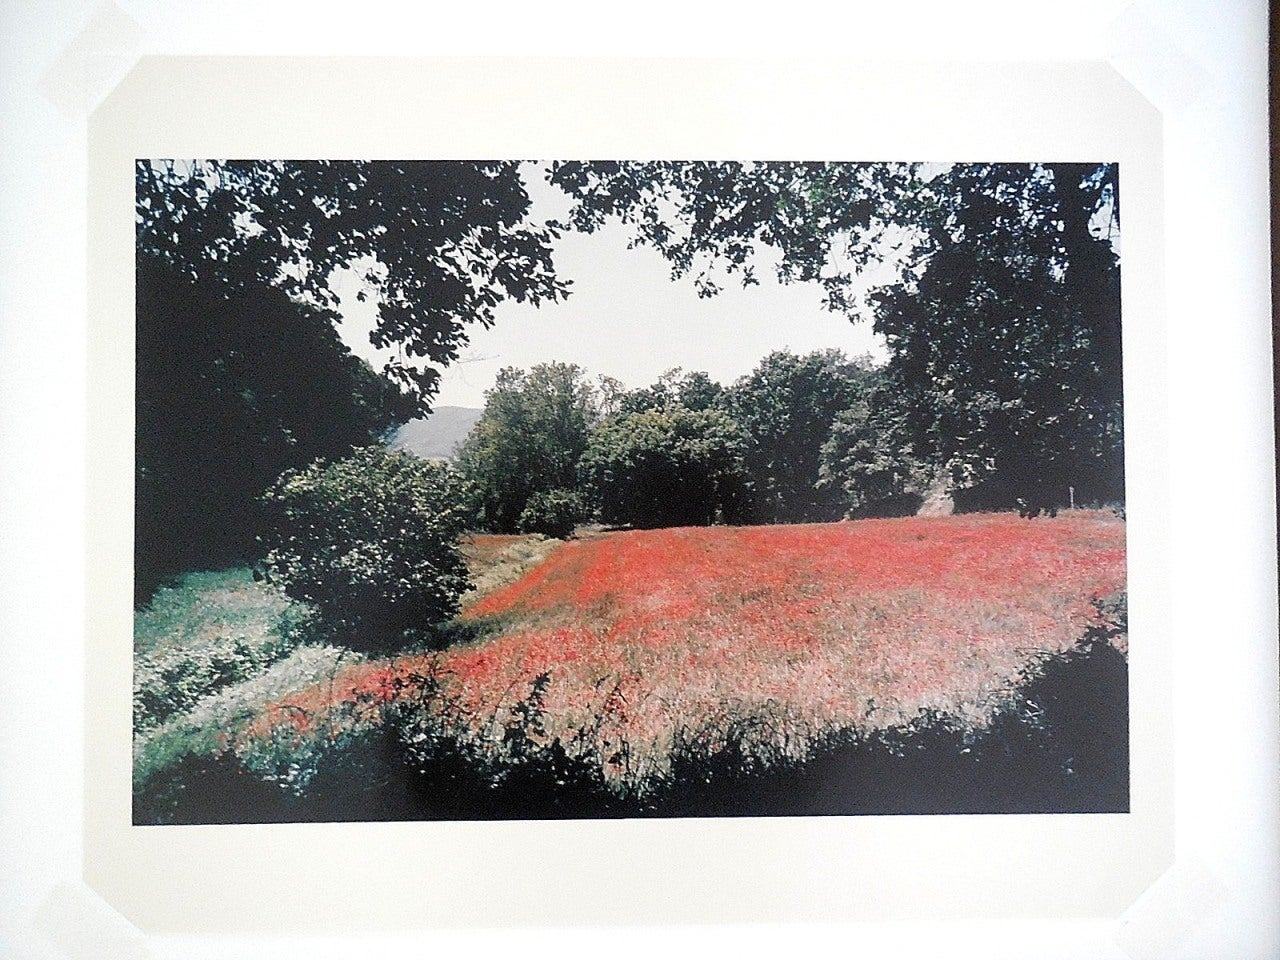 Tuscany, Field of Poppies, 1996 Large Vintage Color Photograph C Print Signed For Sale 3